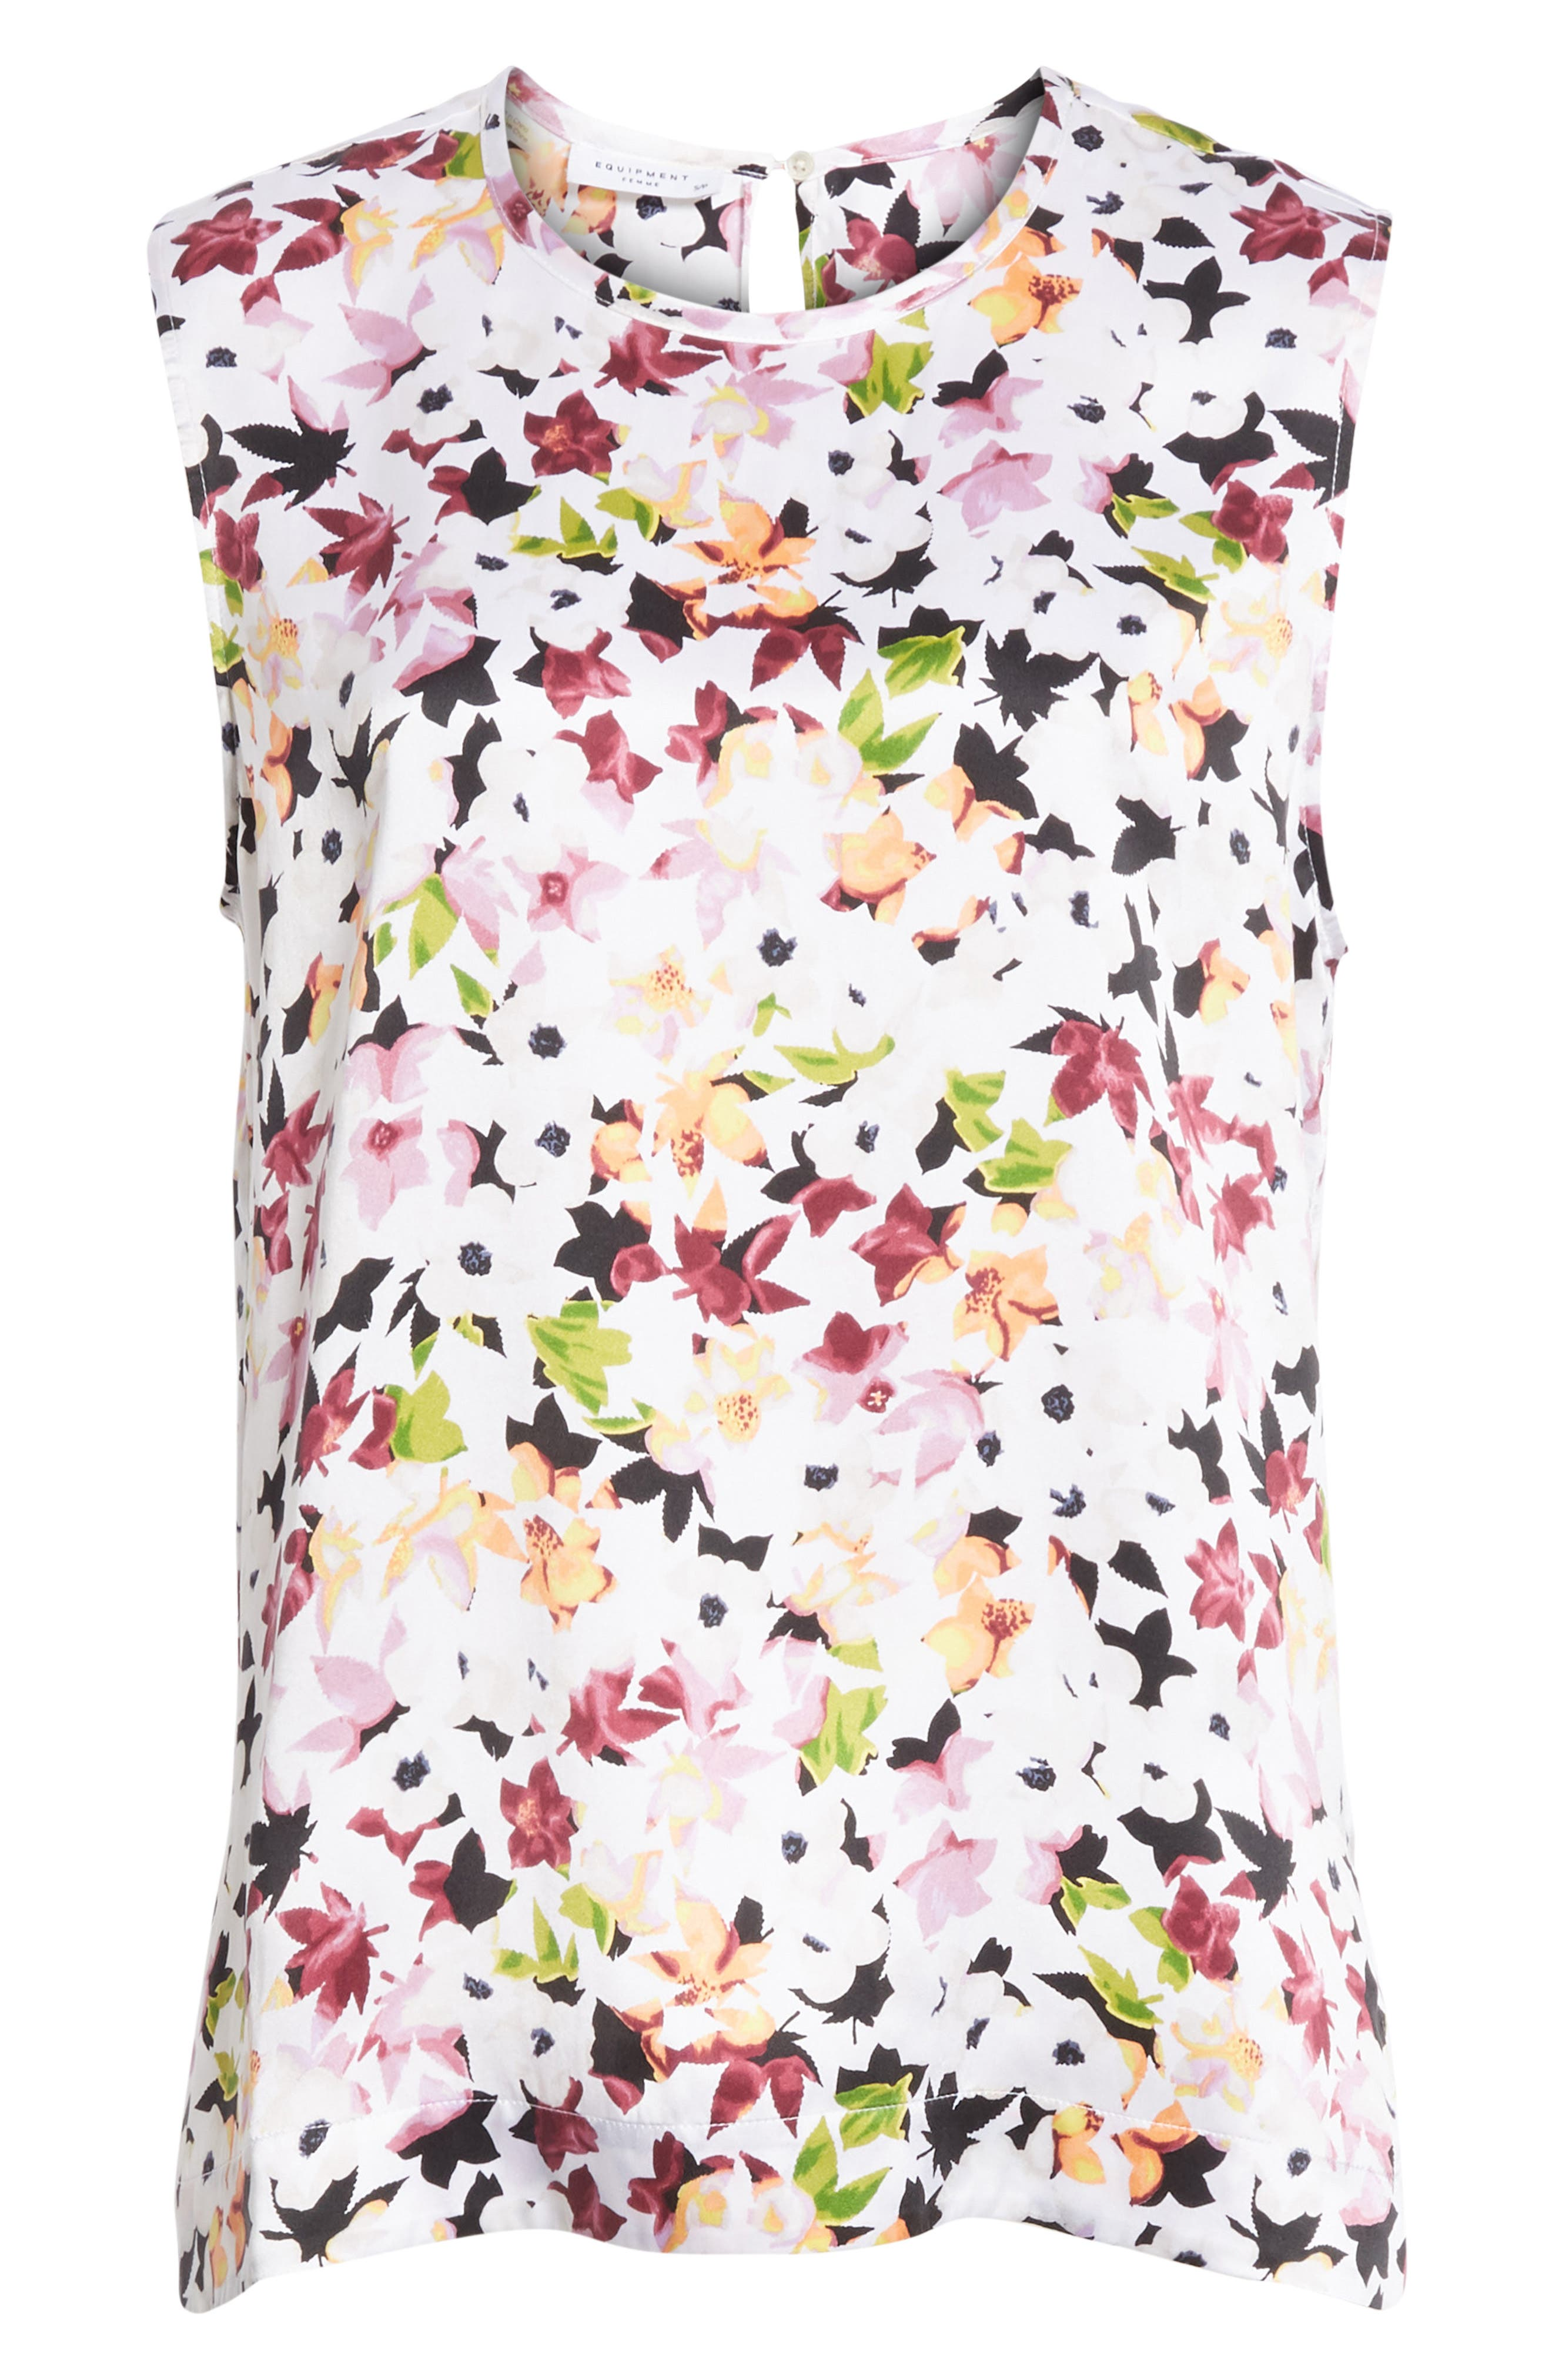 Layla Floral Silk Top,                             Alternate thumbnail 6, color,                             118